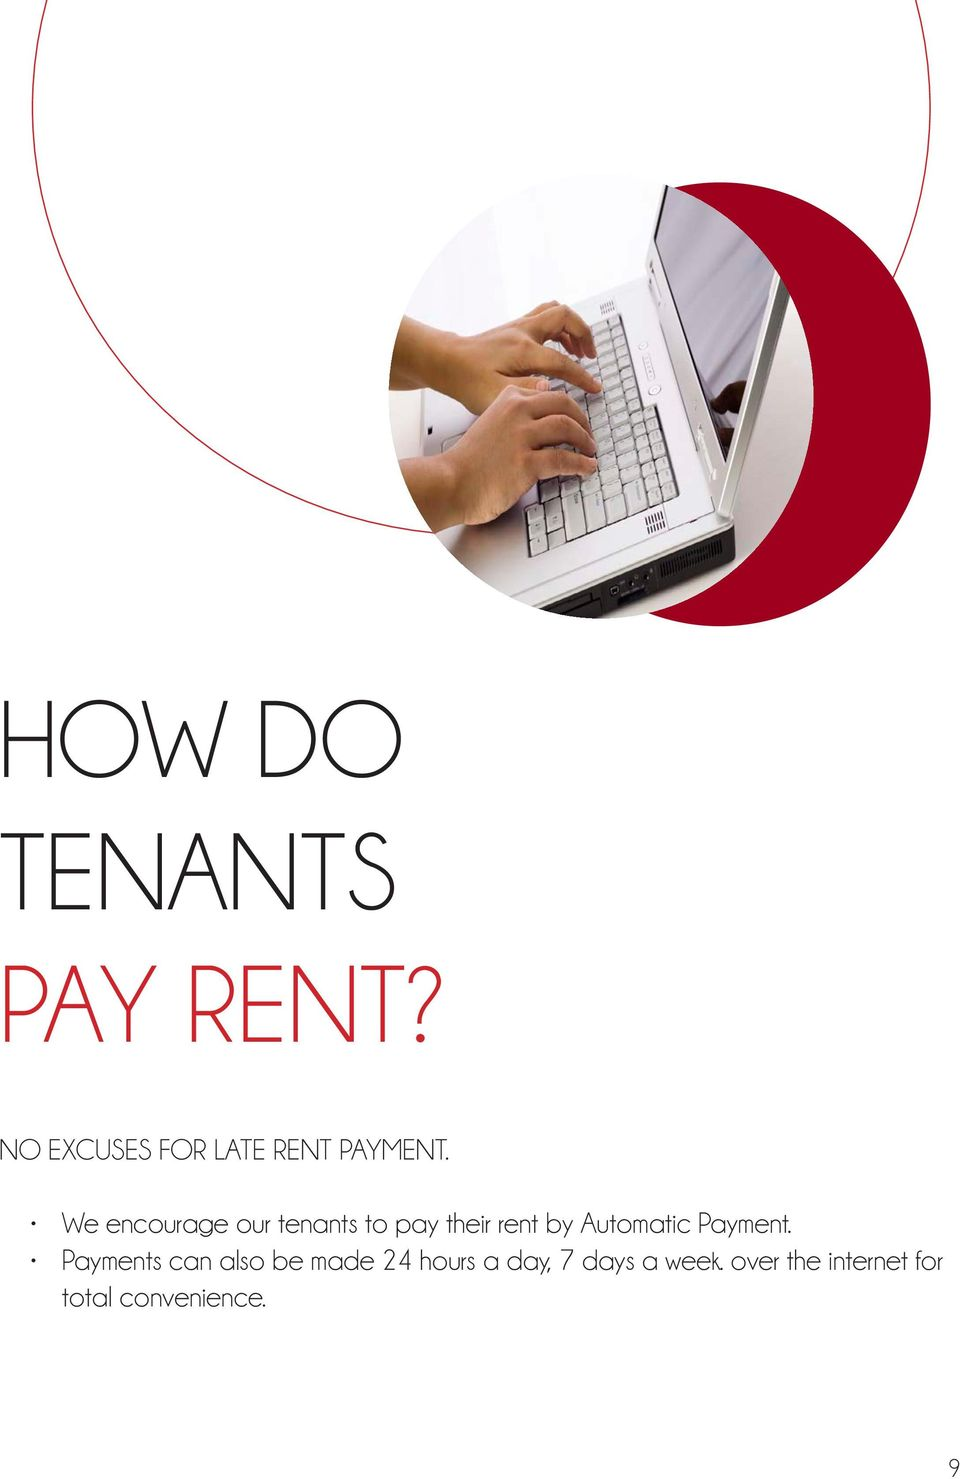 We encourage our tenants to pay their rent by Automatic